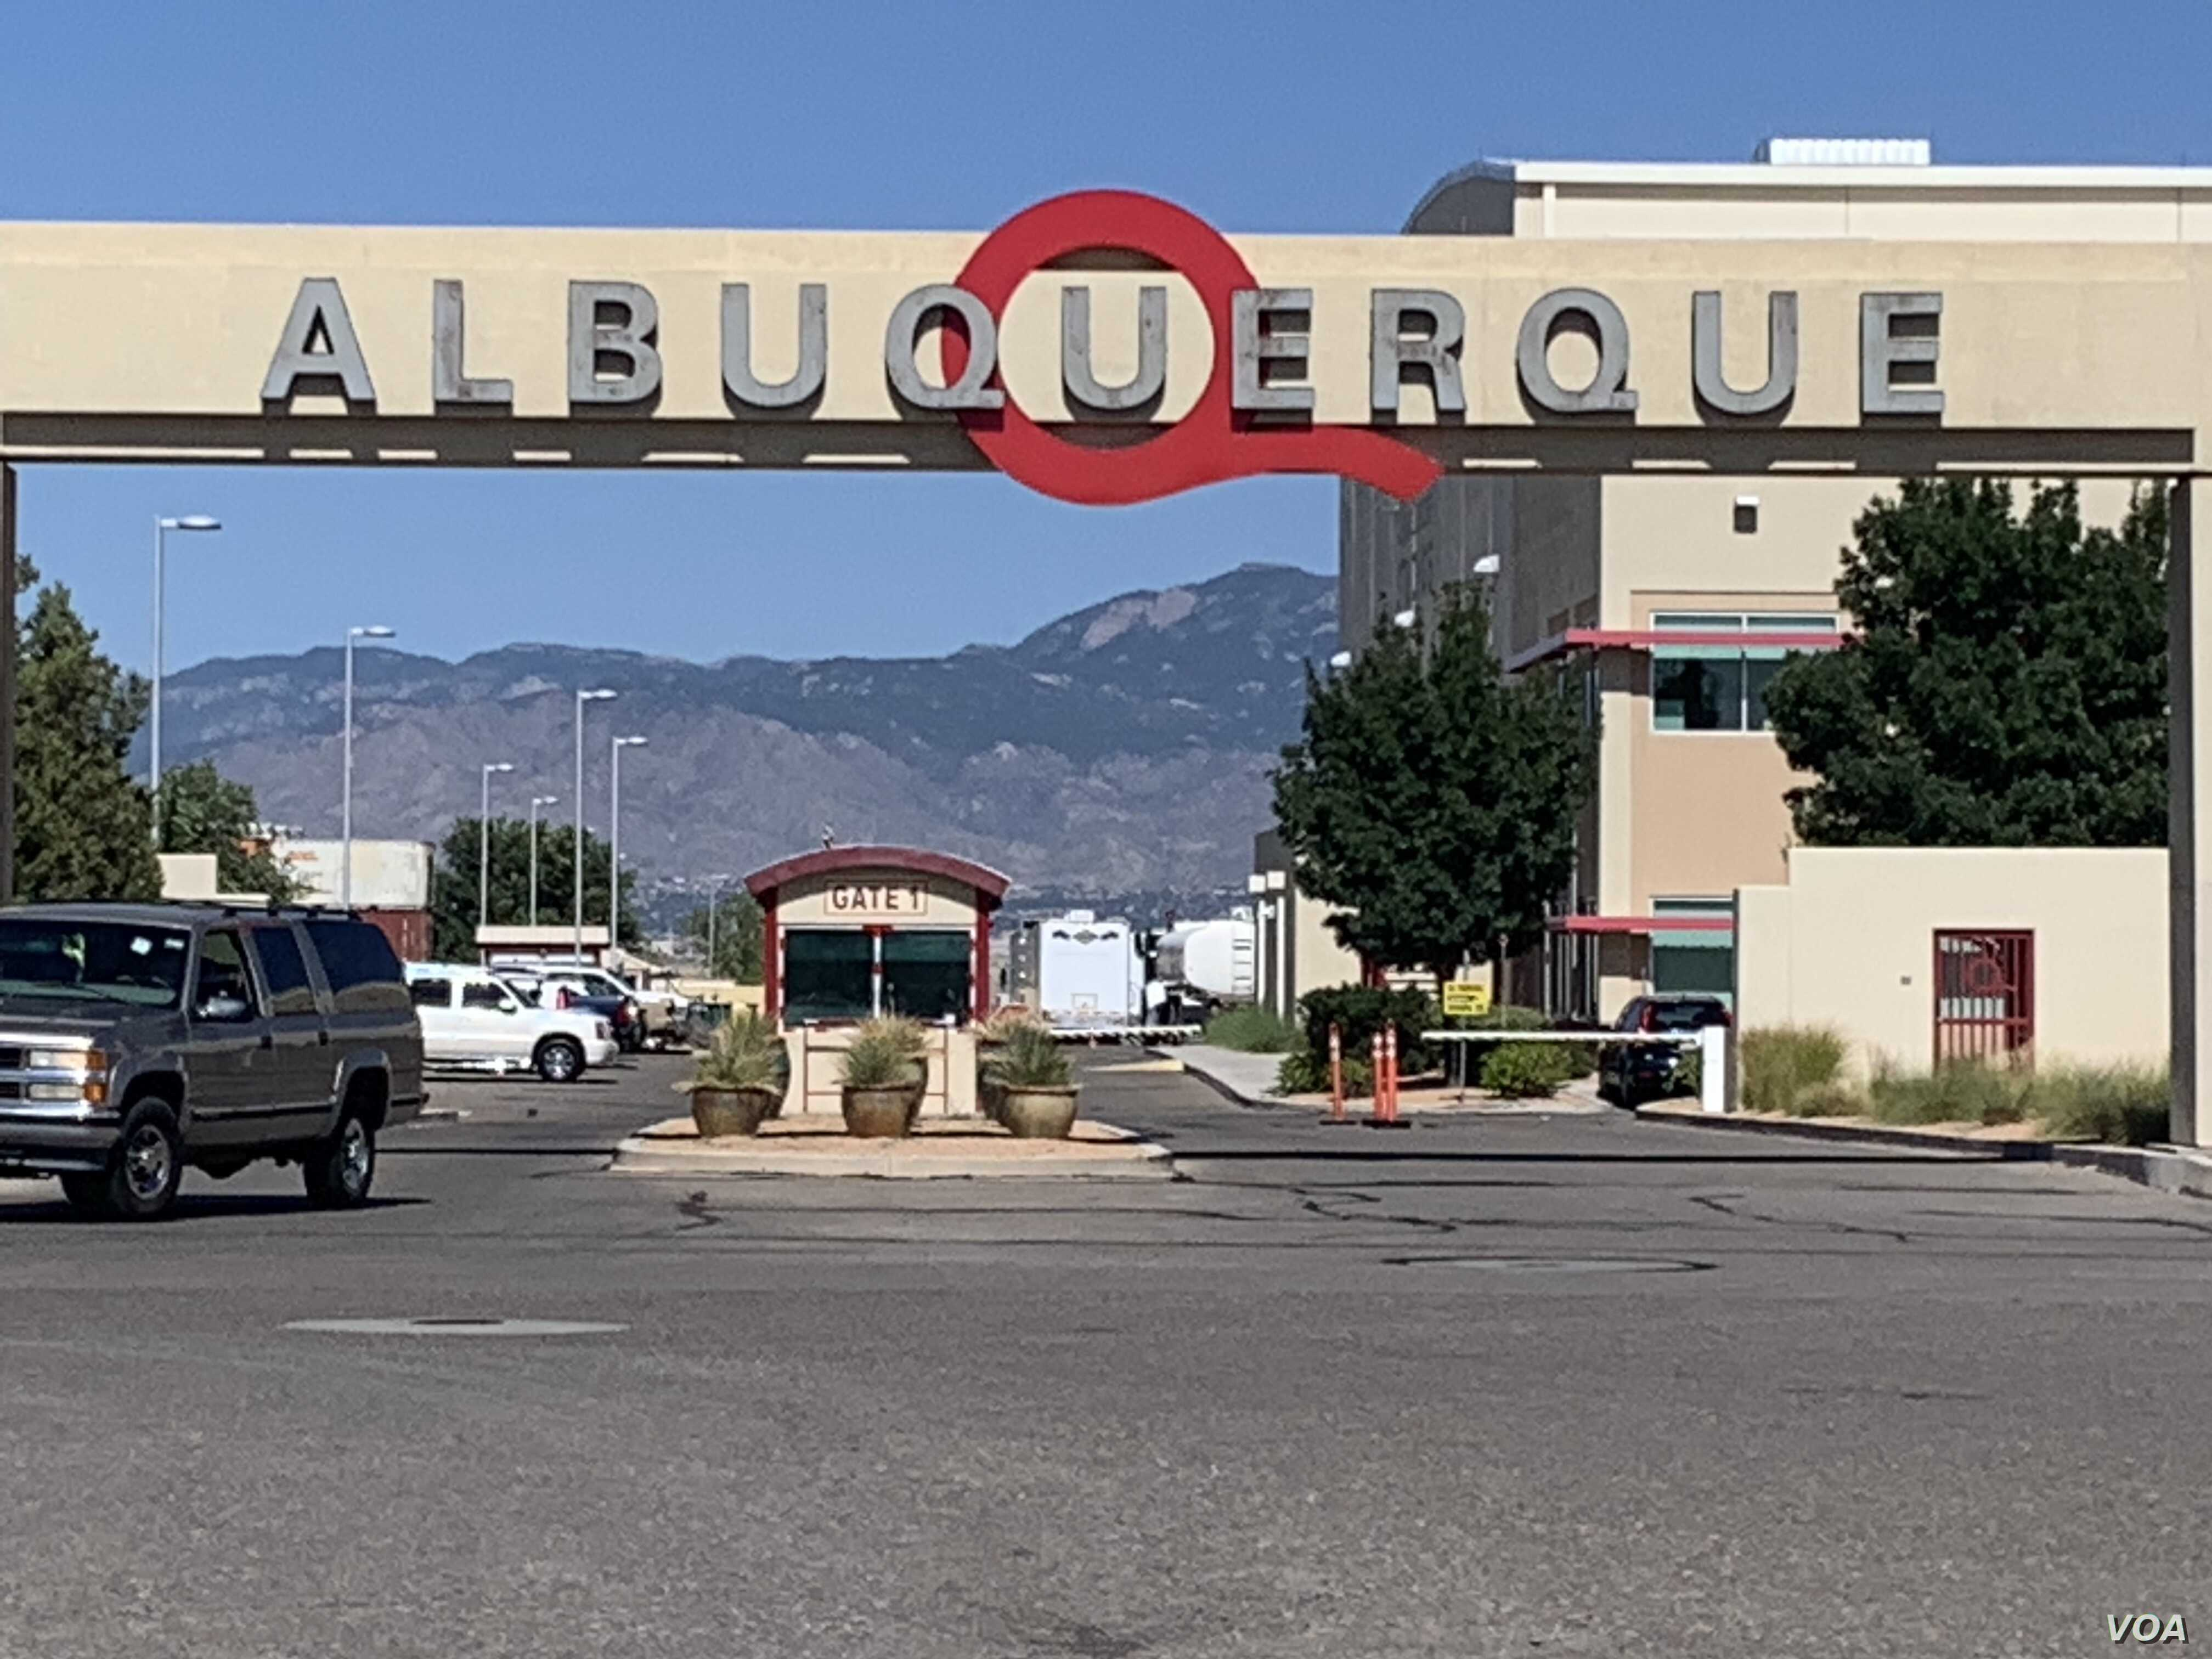 Hollywood is Taking Albuquerque by Storm